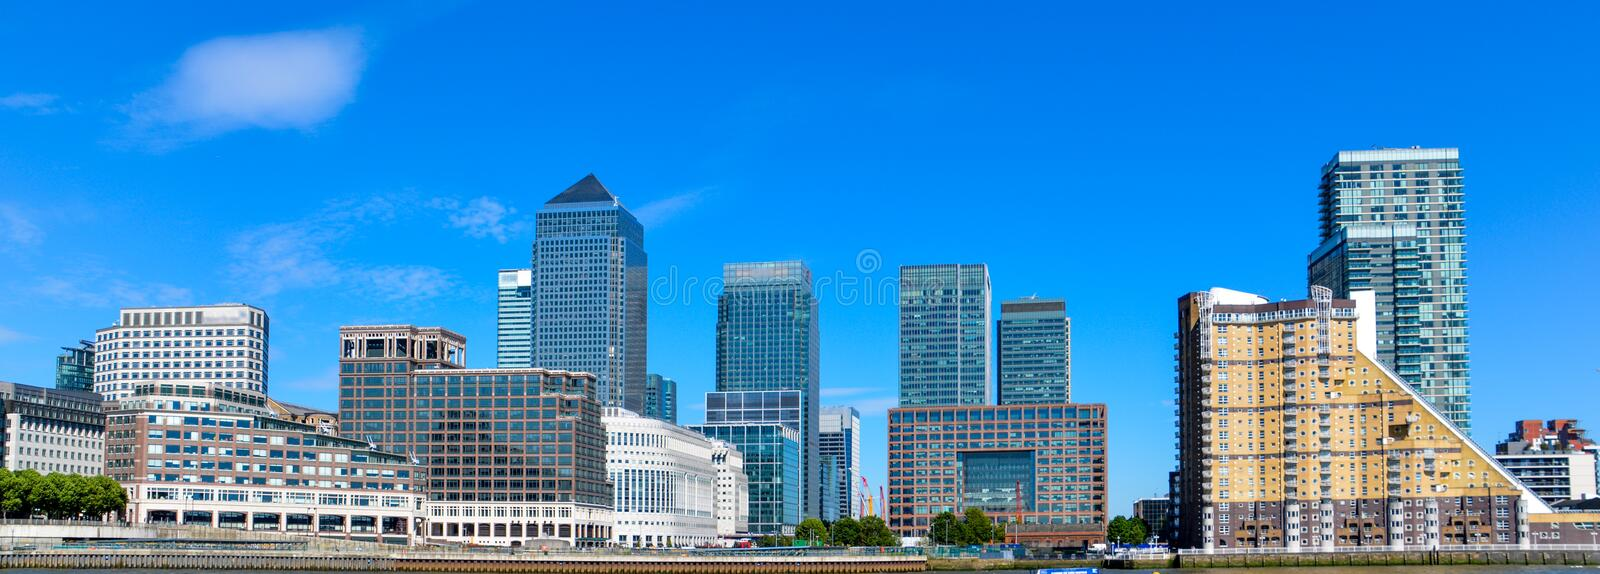 Canary Wharf, hub financier à Londres pendant le jour de soleil photos stock